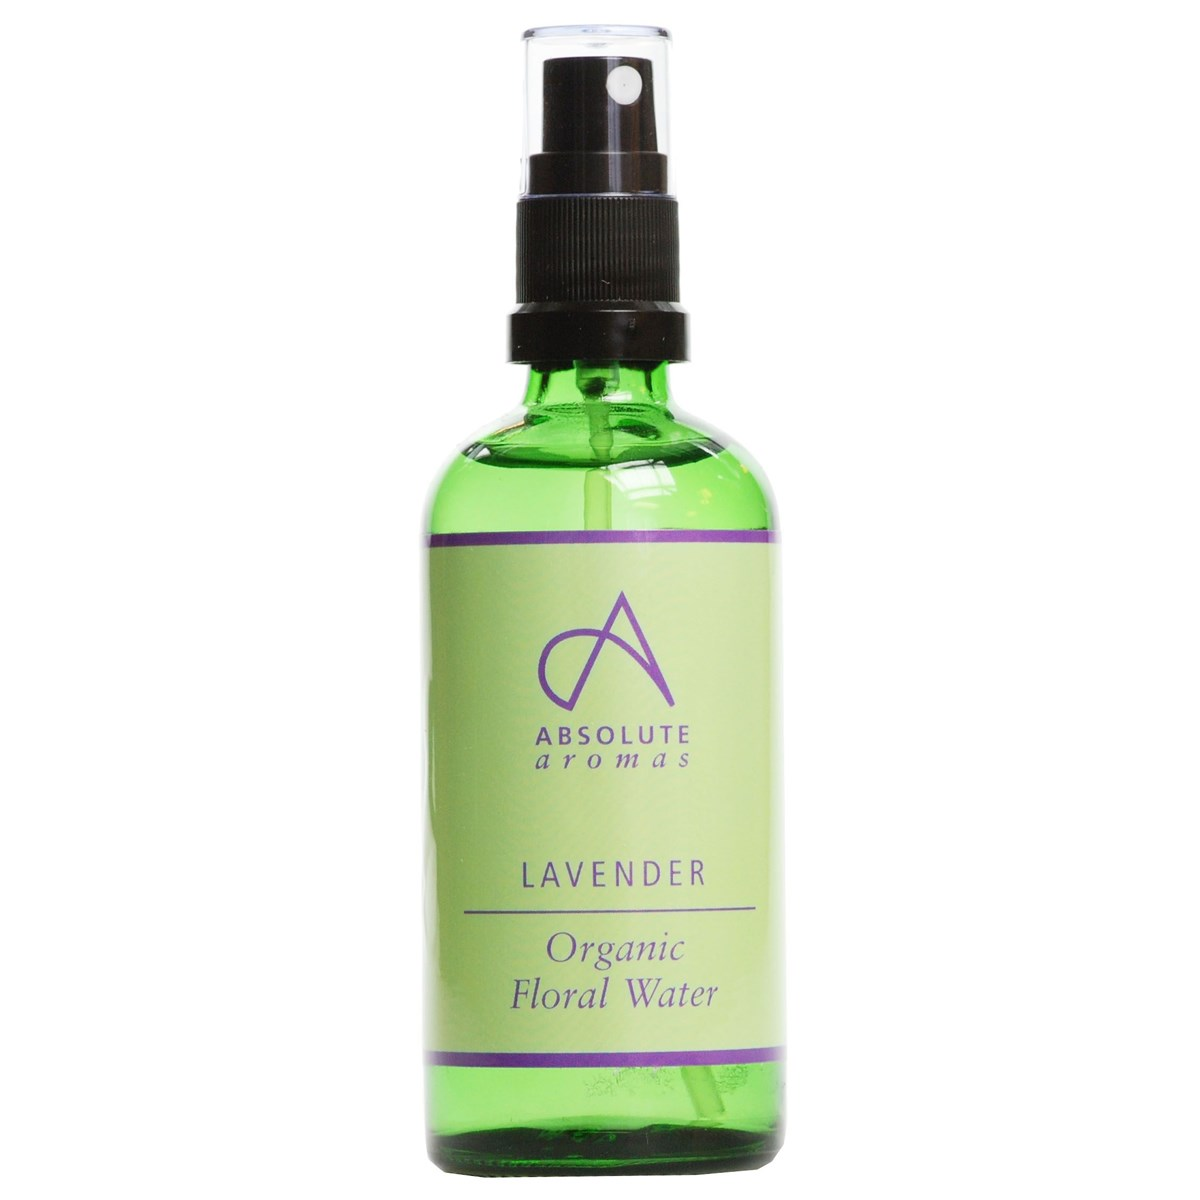 Absolute Aromas Organic Lavender Floral Water